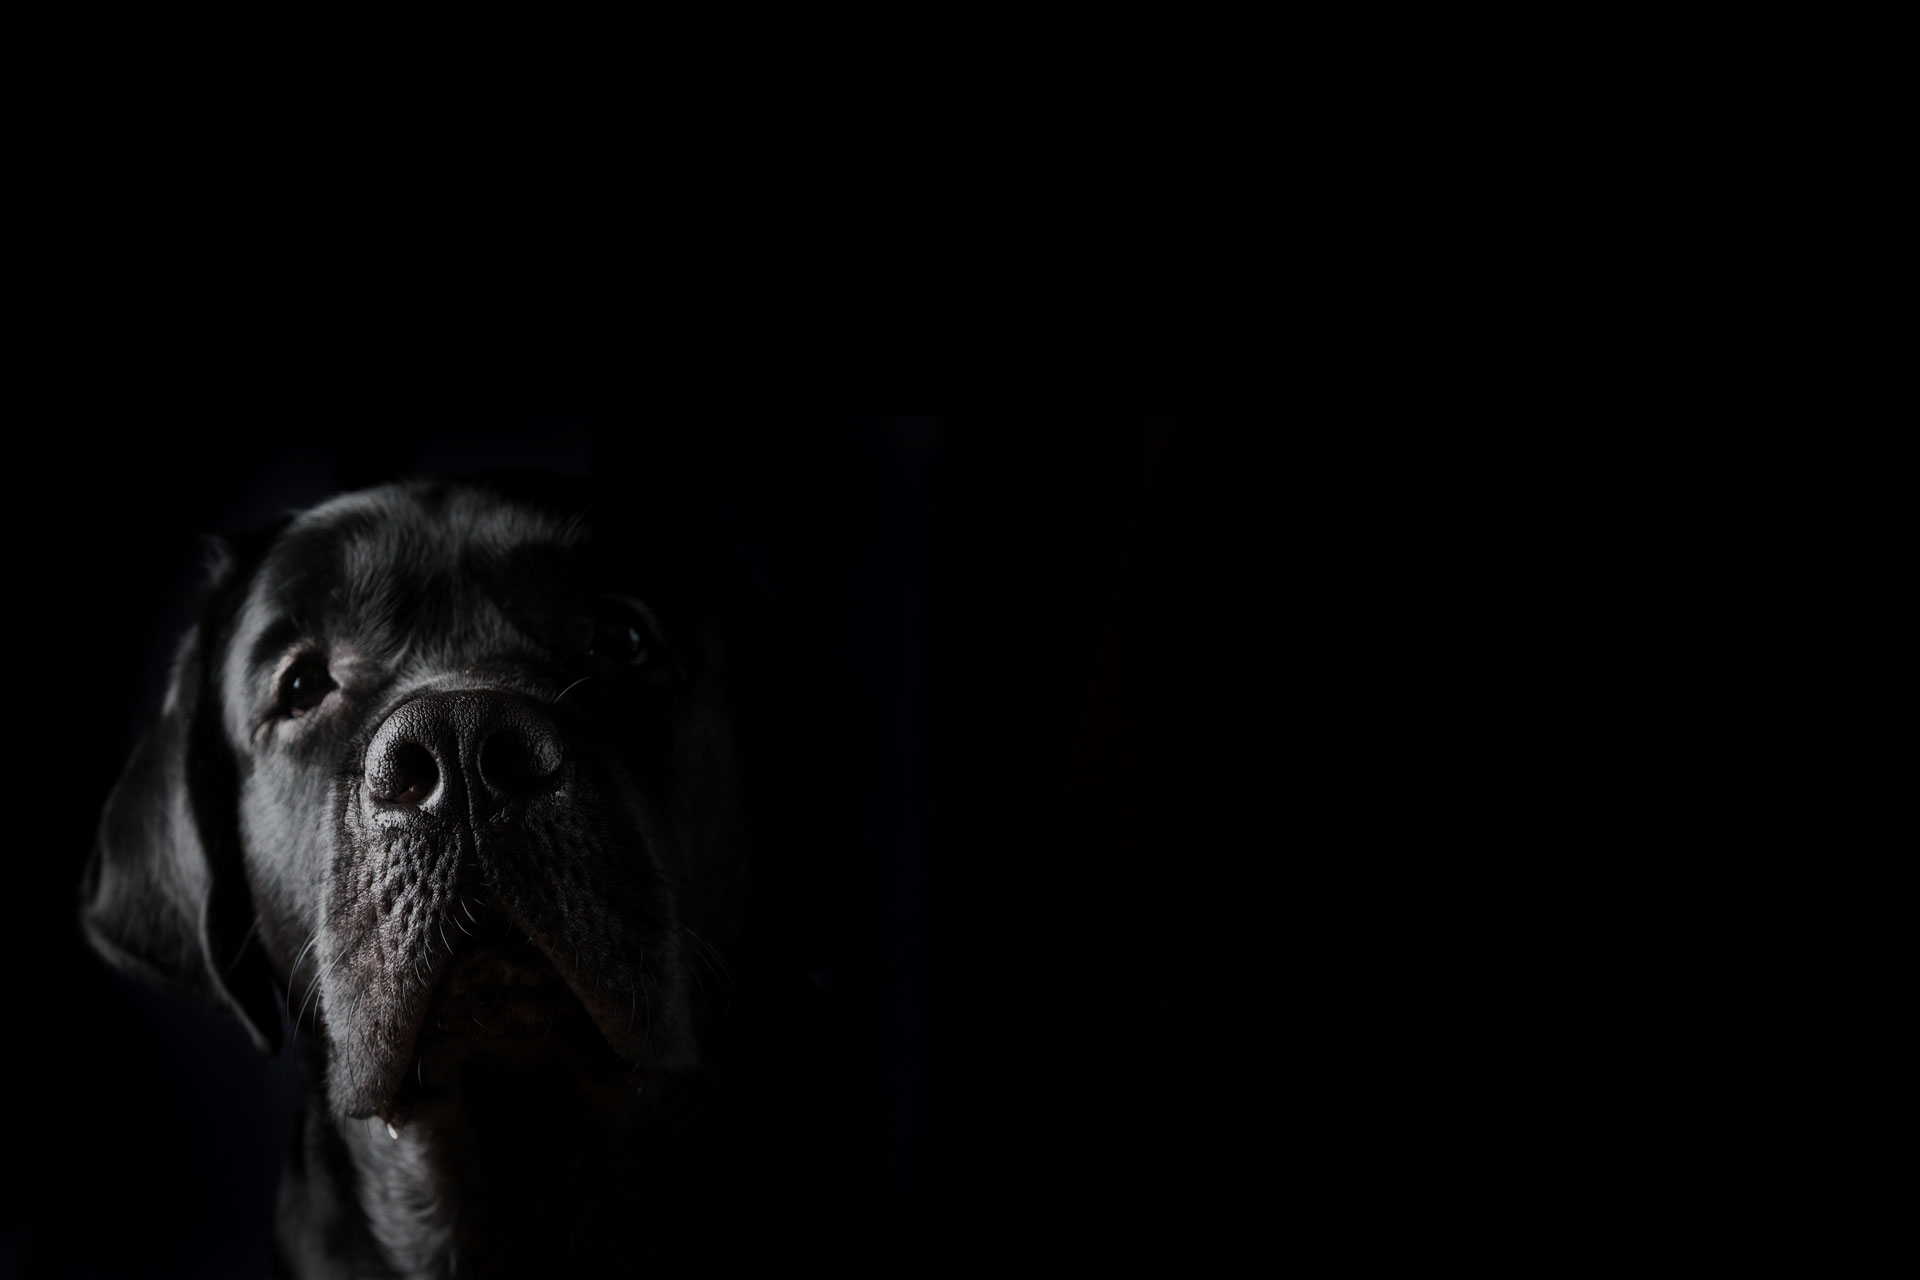 Closeup portrait of black Labrador dog on black background